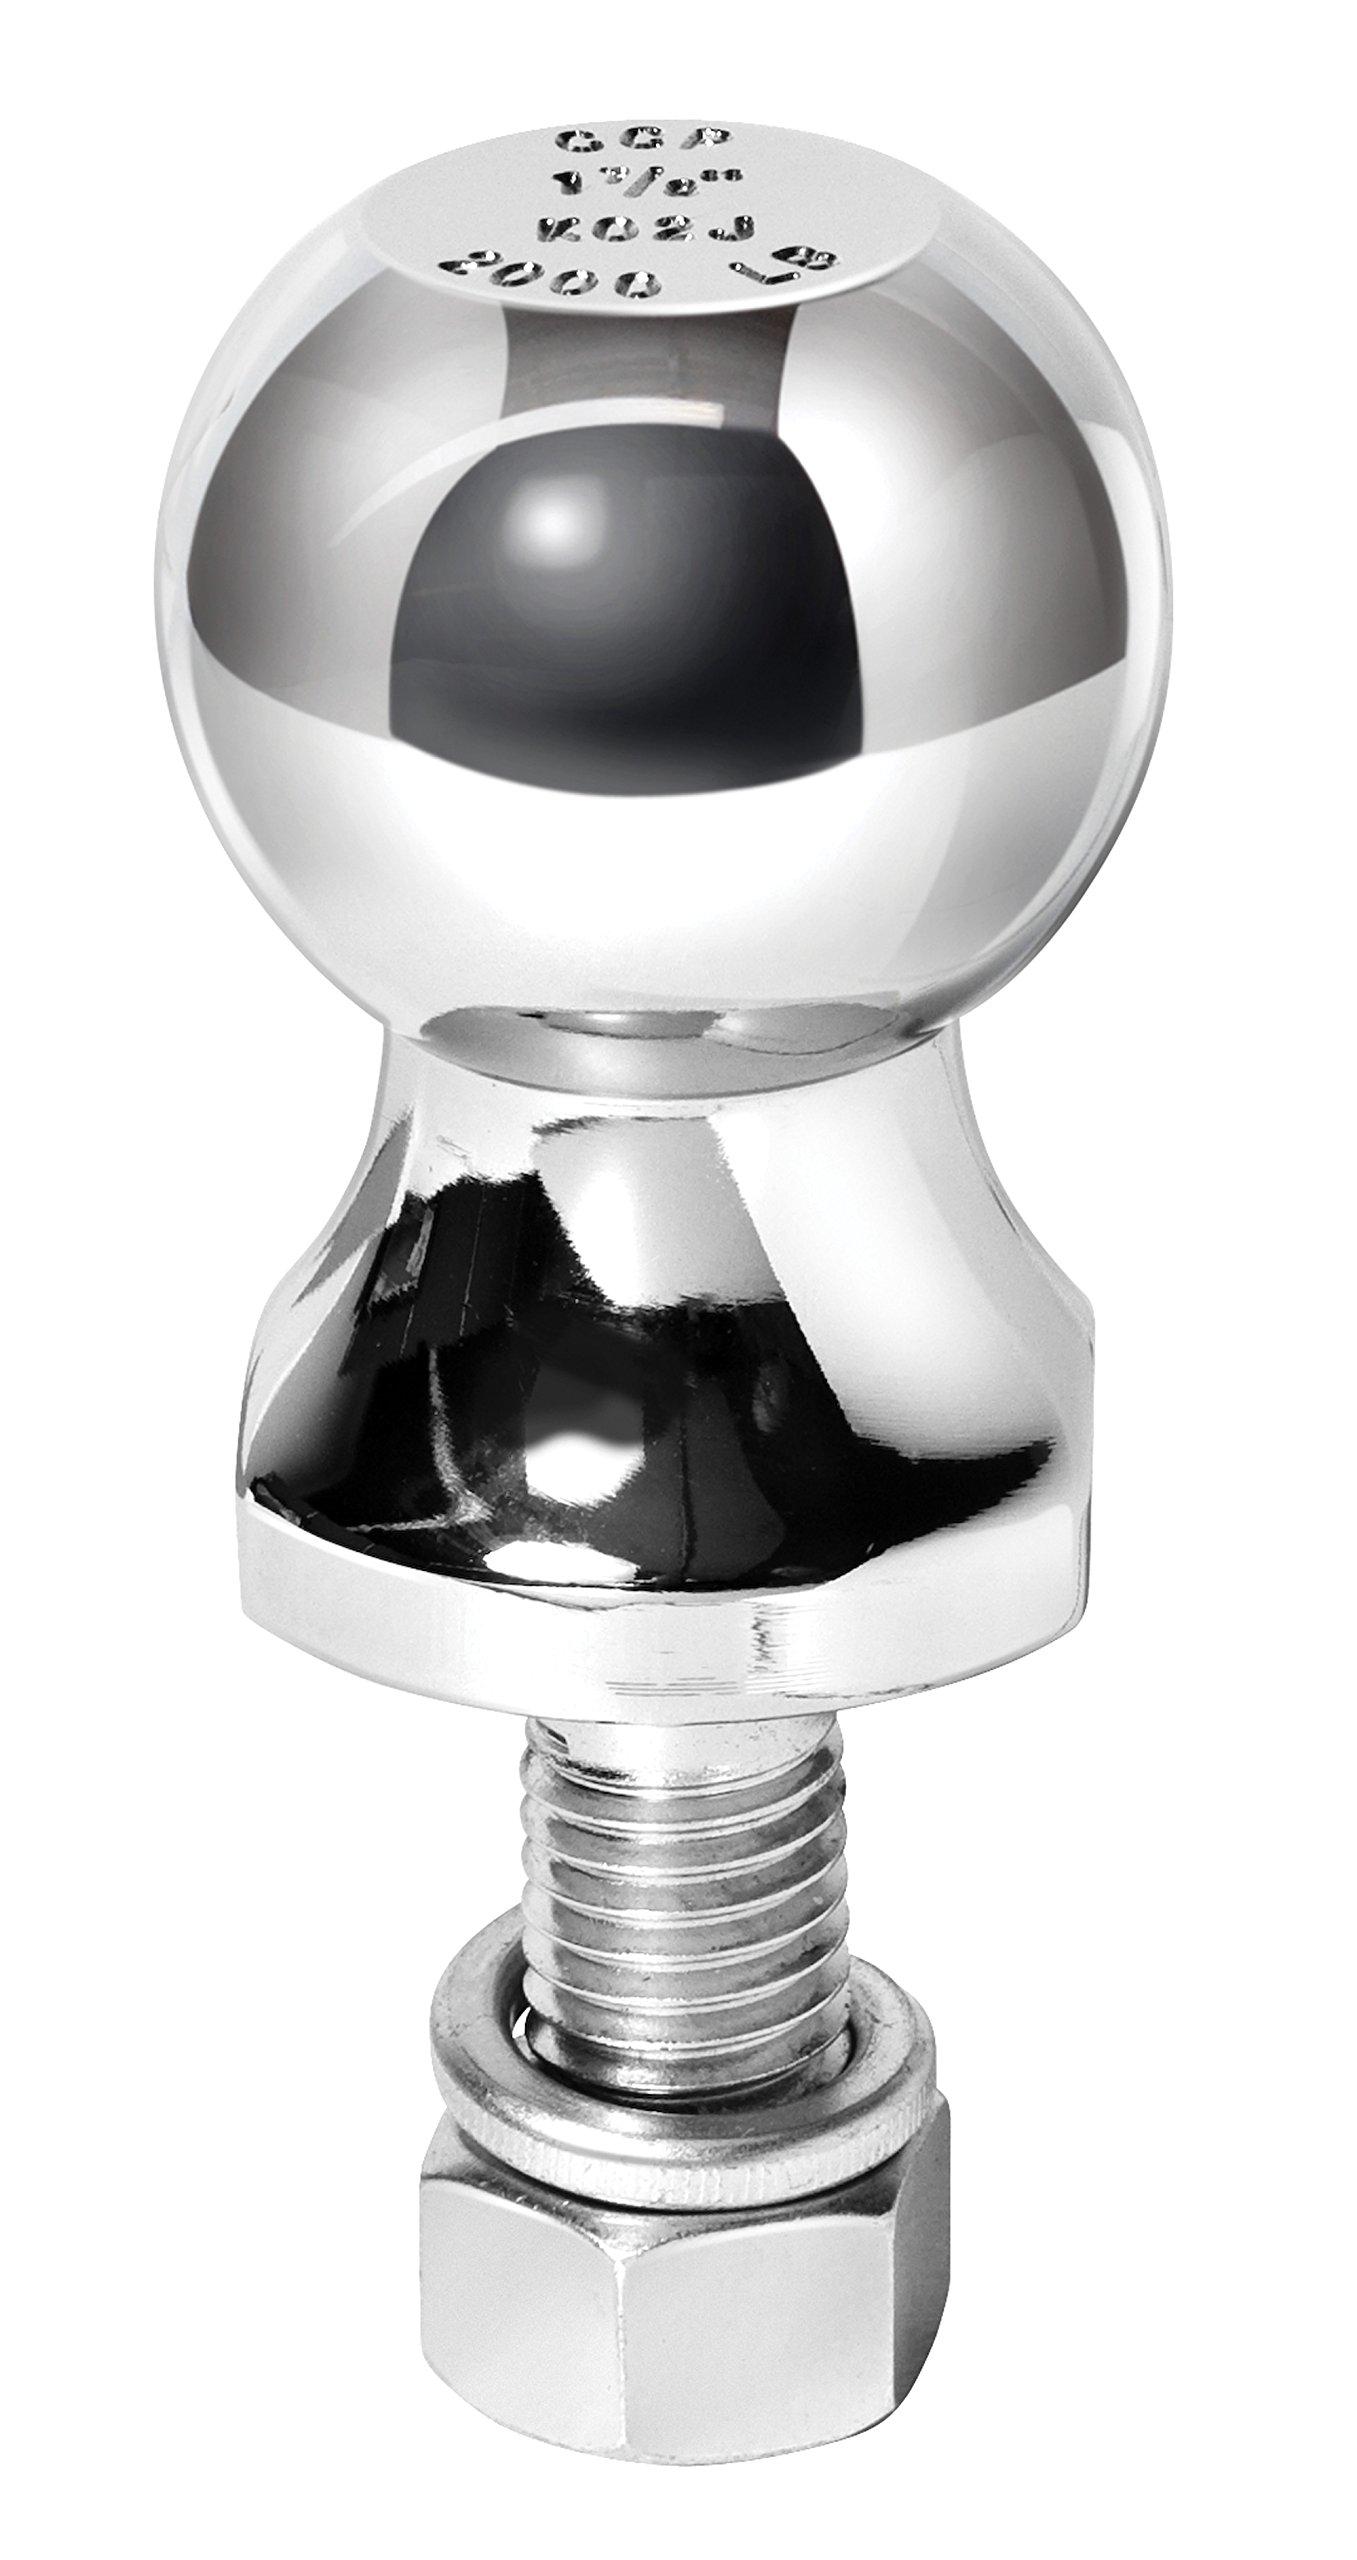 Reese Towpower 7036800 1-7/8'' Chrome Hitch Ball for ATV/Lawn Tractor